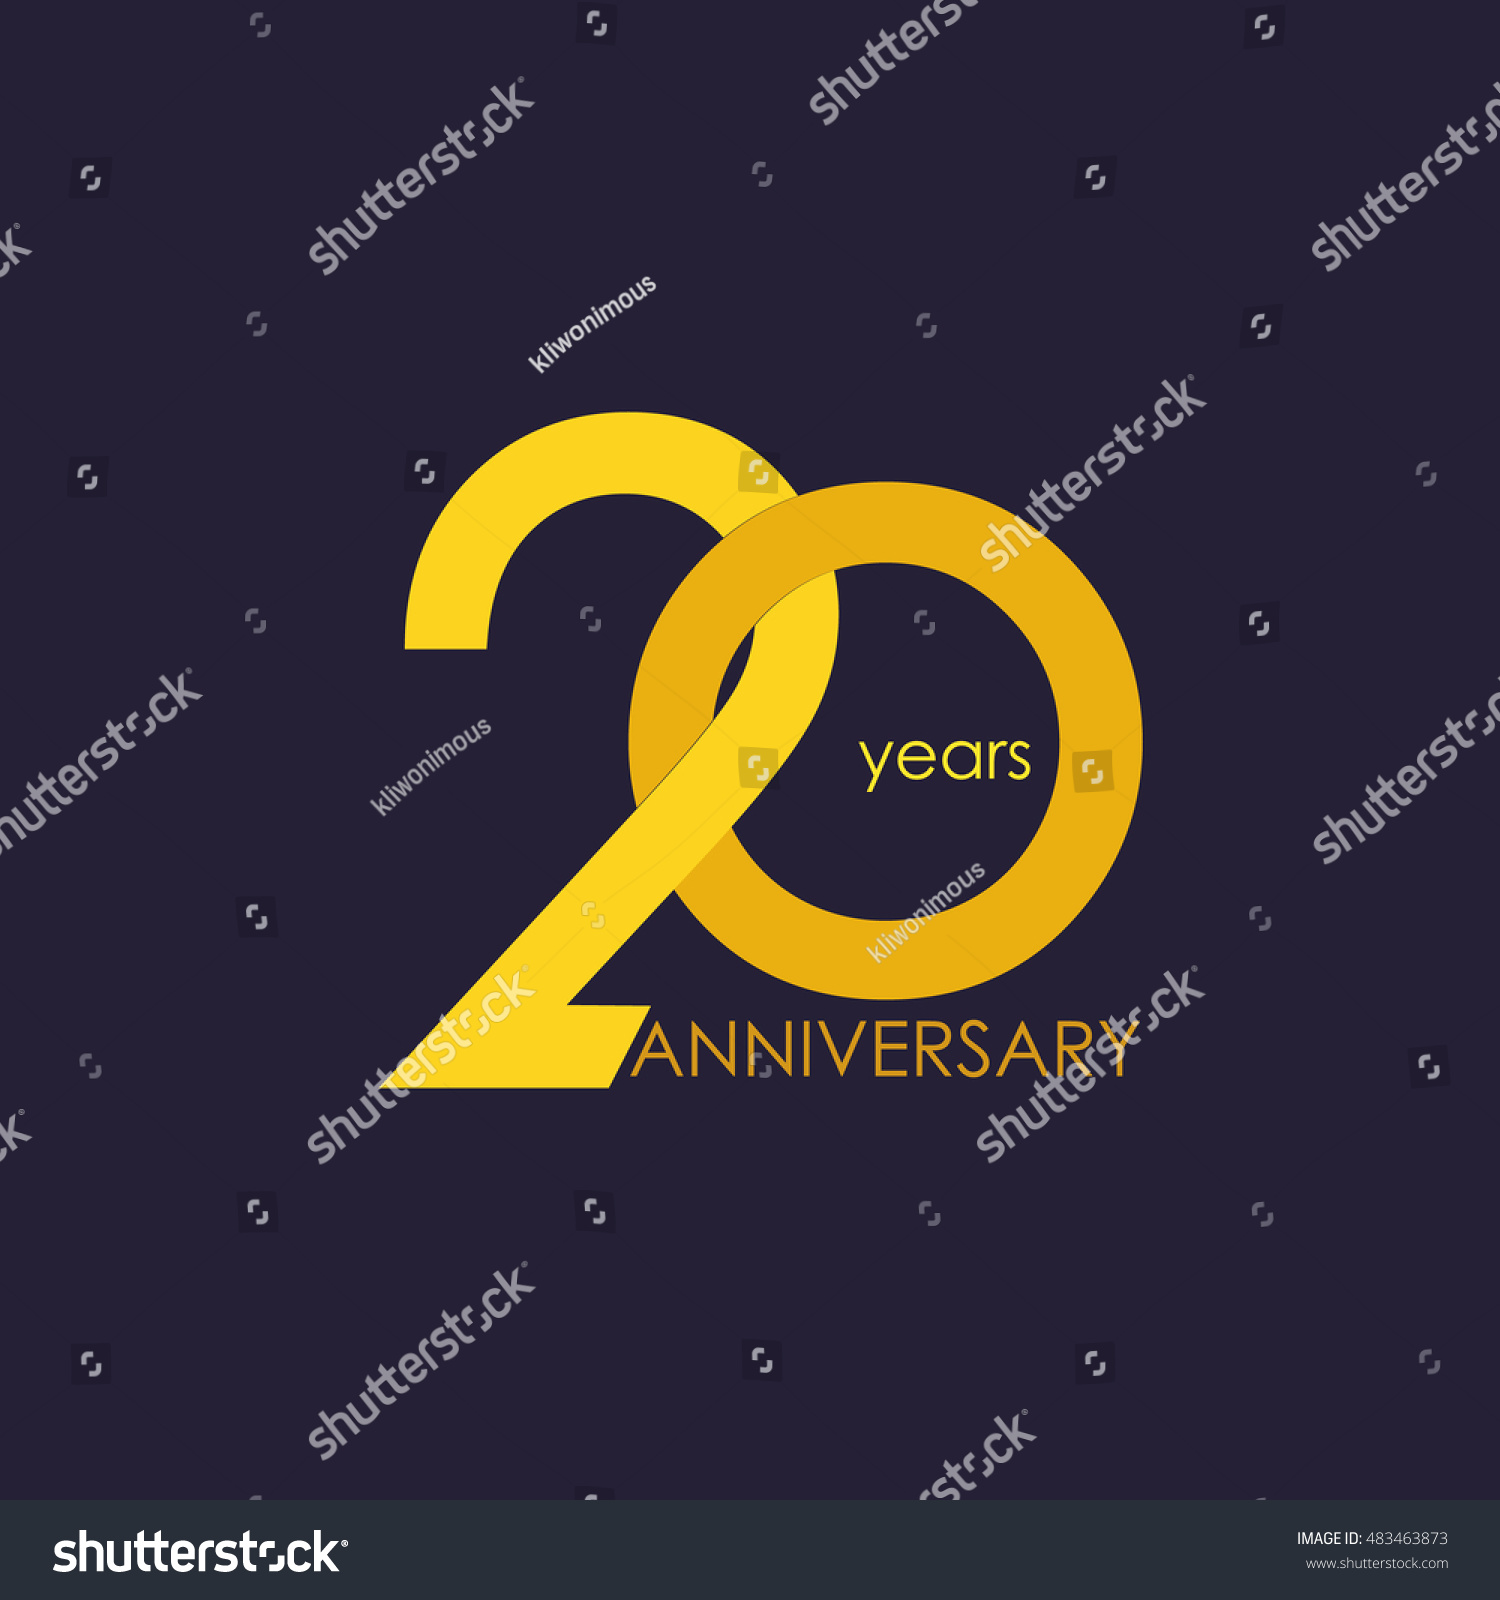 20 Years Anniversary Signs Symbols Which Stock Vector Royalty Free